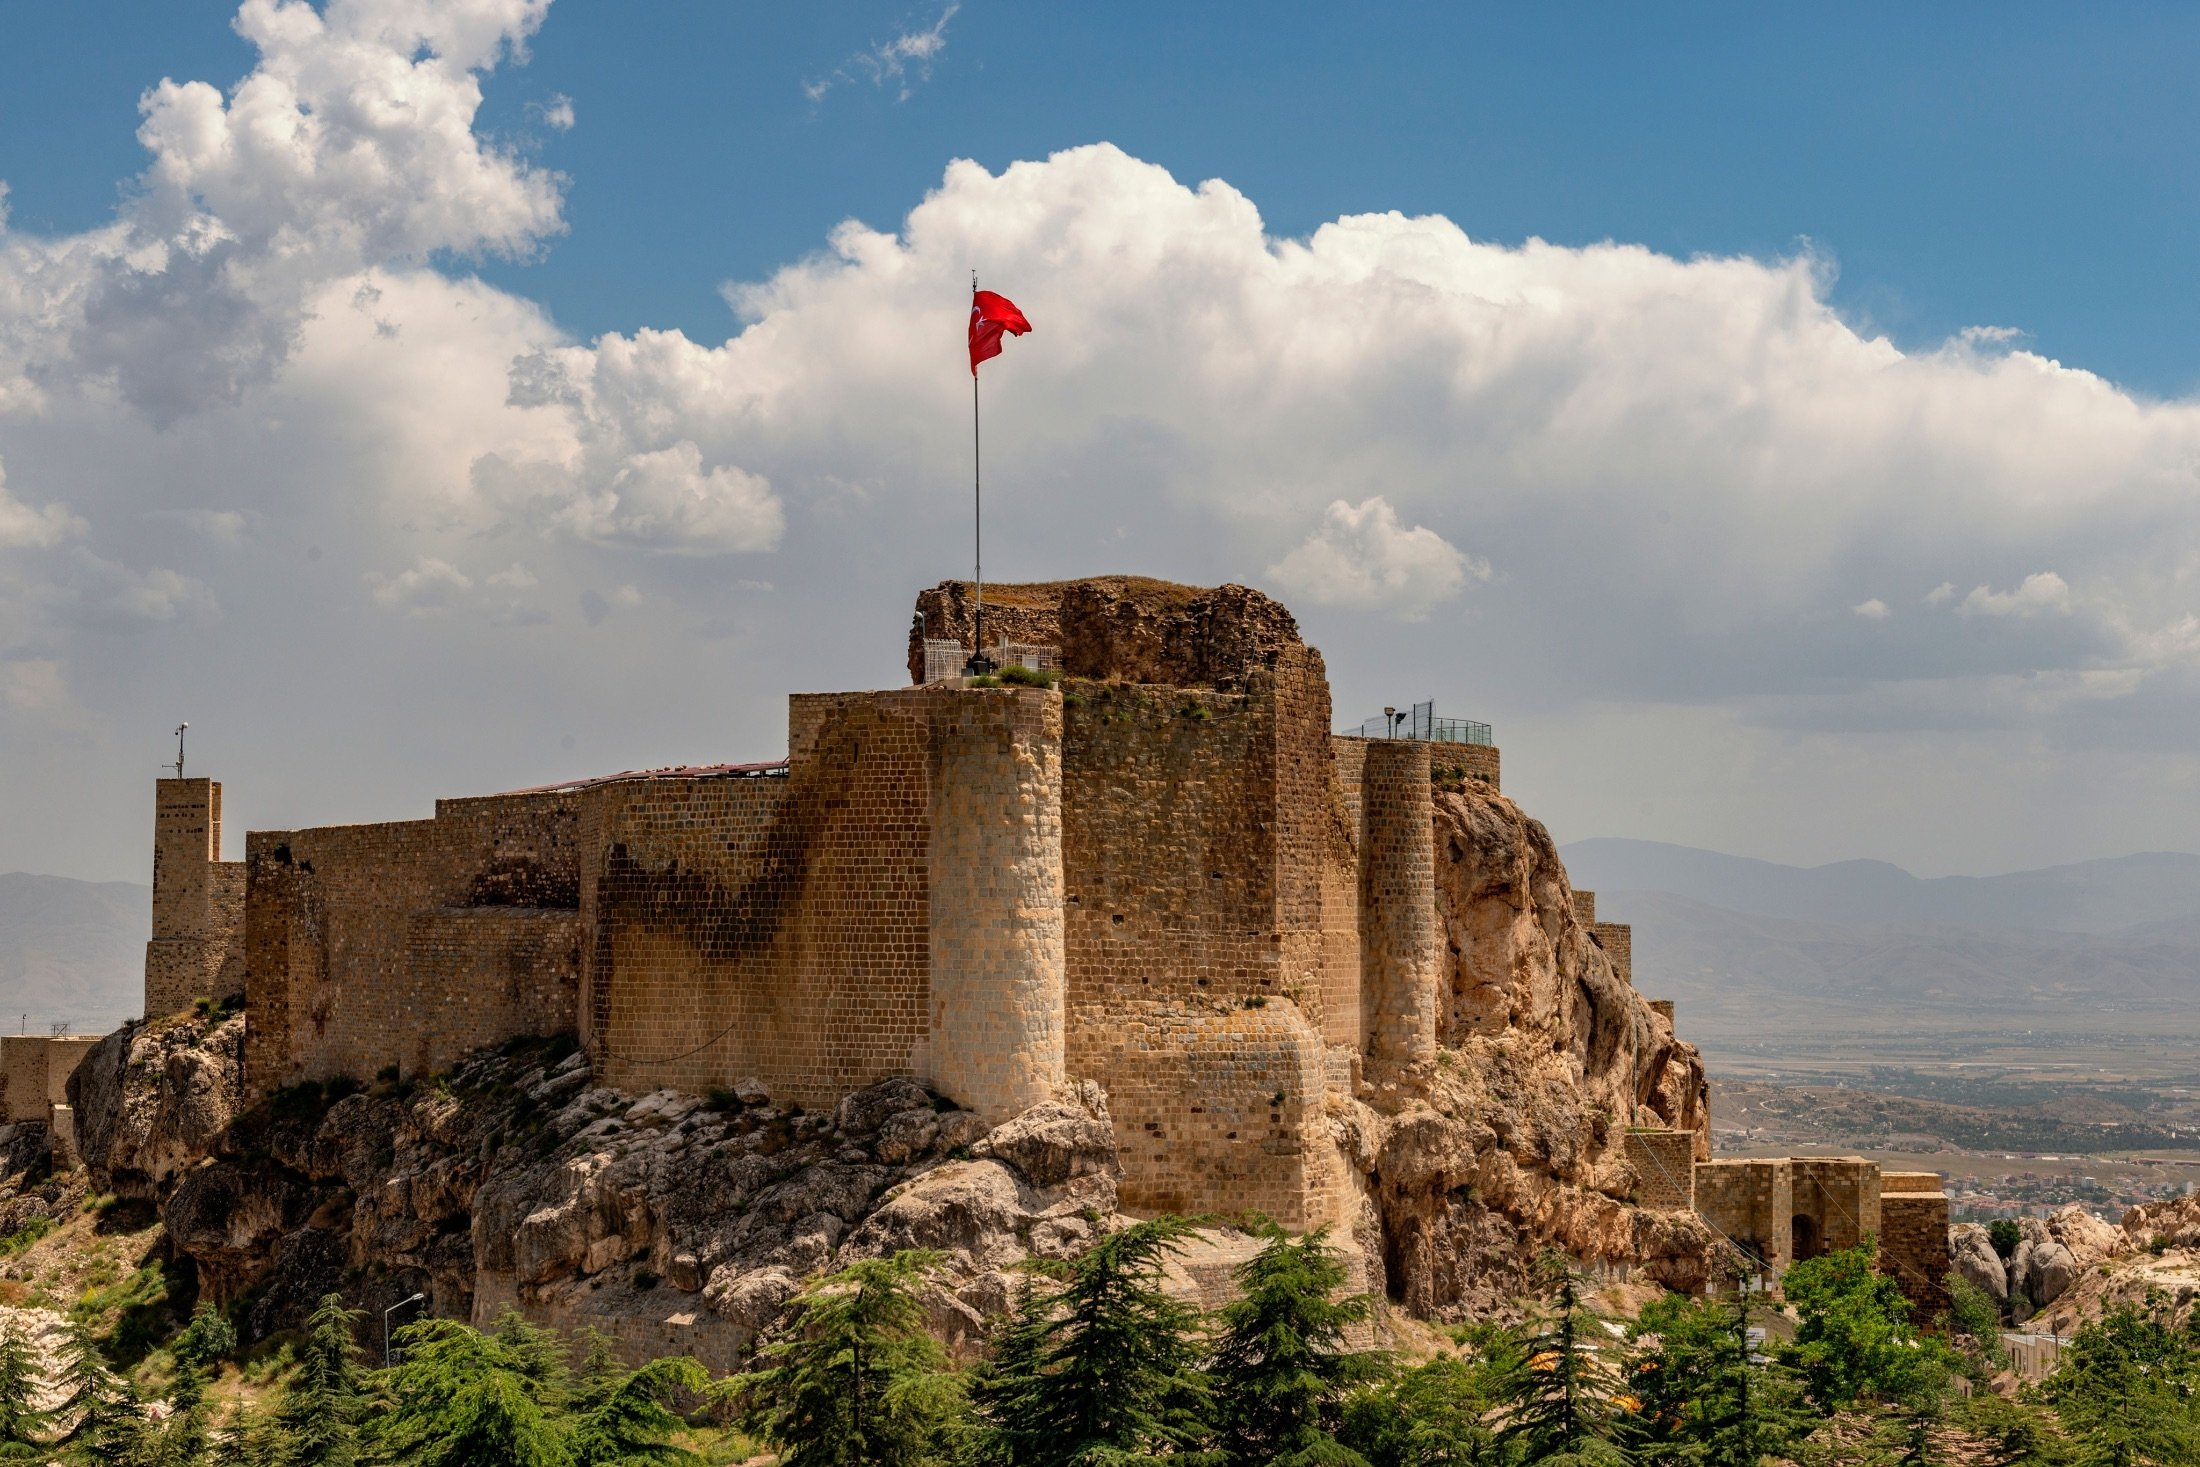 A Turkish flag waves on top of the Harput Castle, the nearly 2,000-year-old Urartian fortress, in Elazığ, Turkey. (Shutterstock Photo)